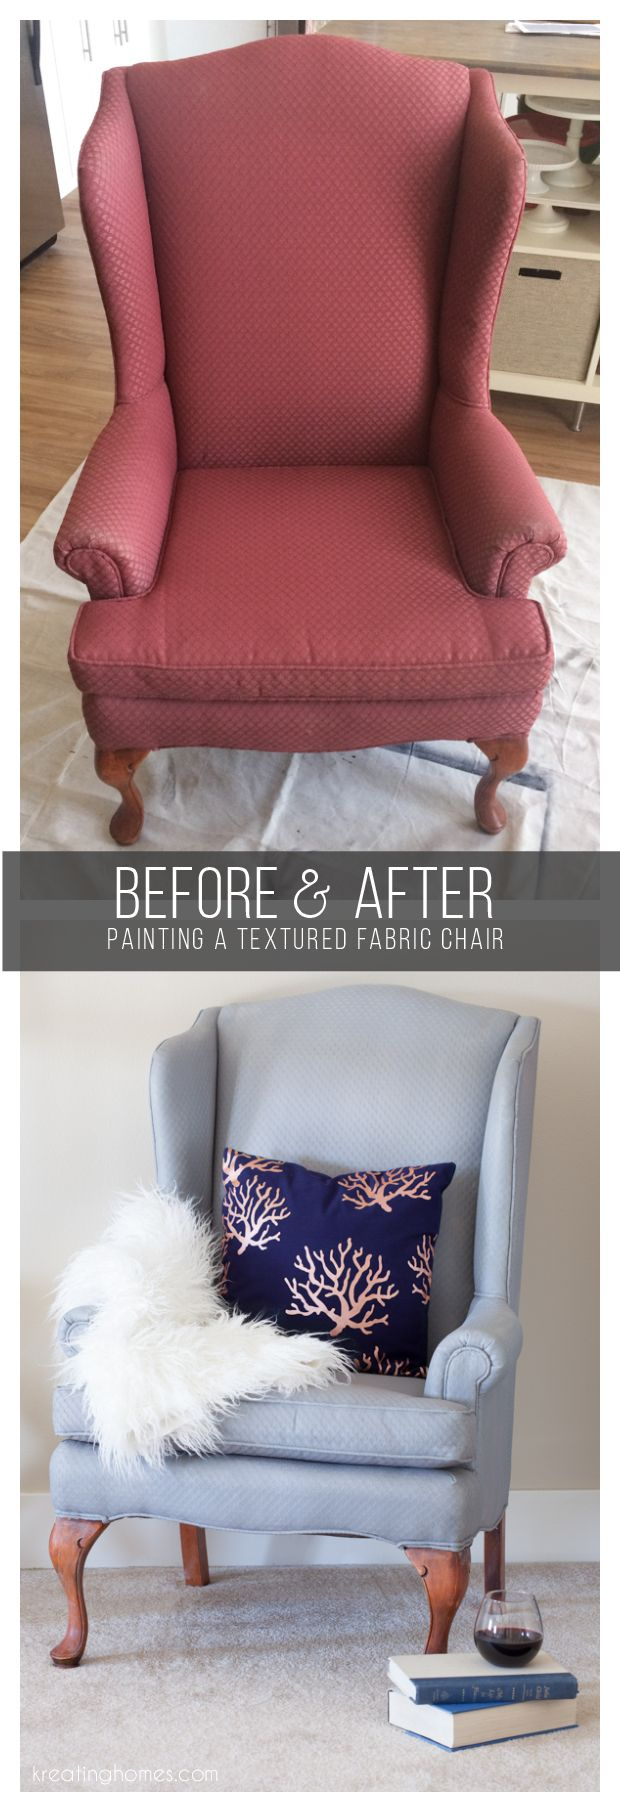 Revamp an old fabric chair with just a couple coats of paint. With a couple tricks you can even keep the texture that makes your piece so fabulous!